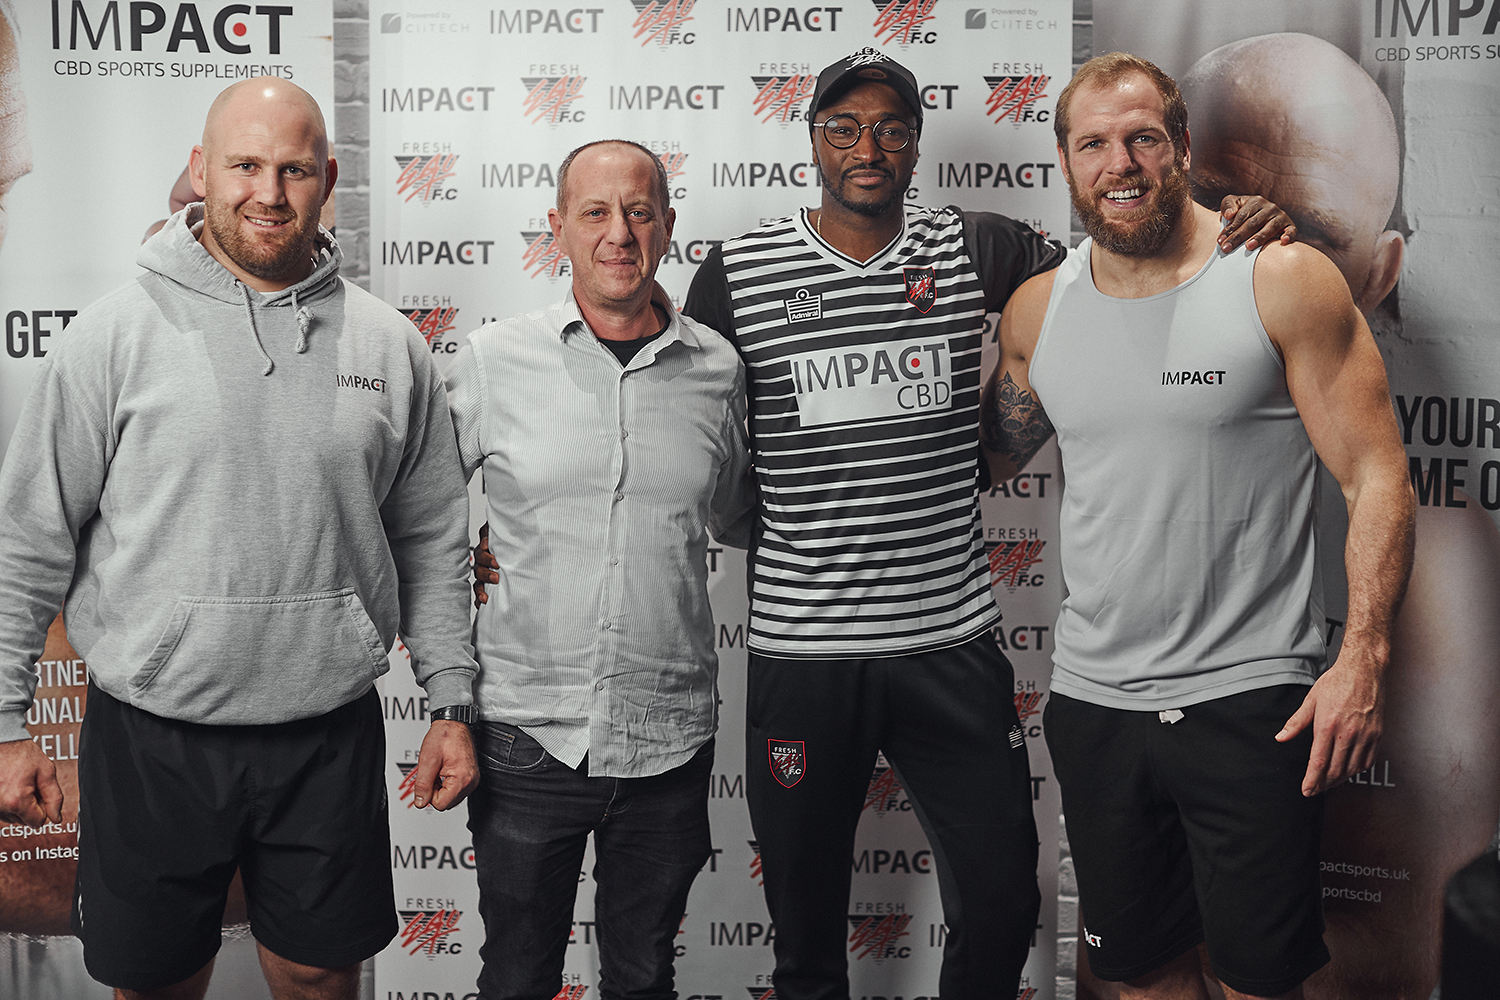 James Haskell and Ben Franks Launch New Brand at WiT London Flagship Hub